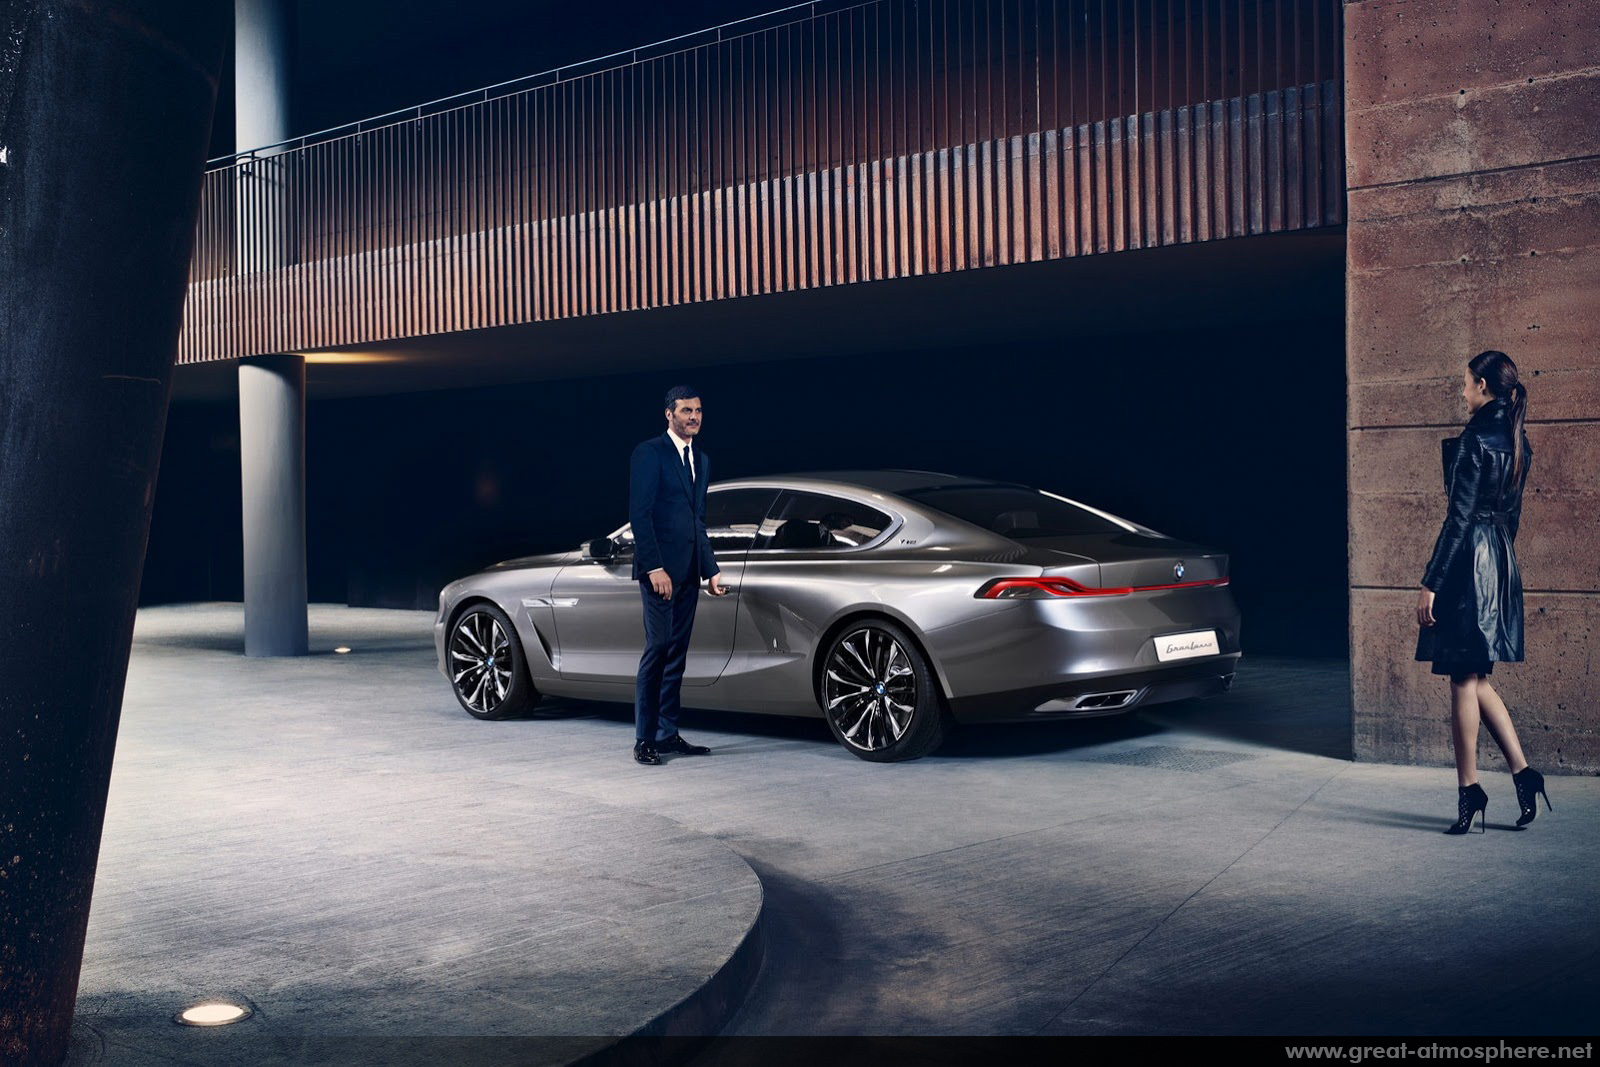 BMW-Pininfarina-Gran-Lusso-Coupe-2013-greatatmosphere-rear-photo